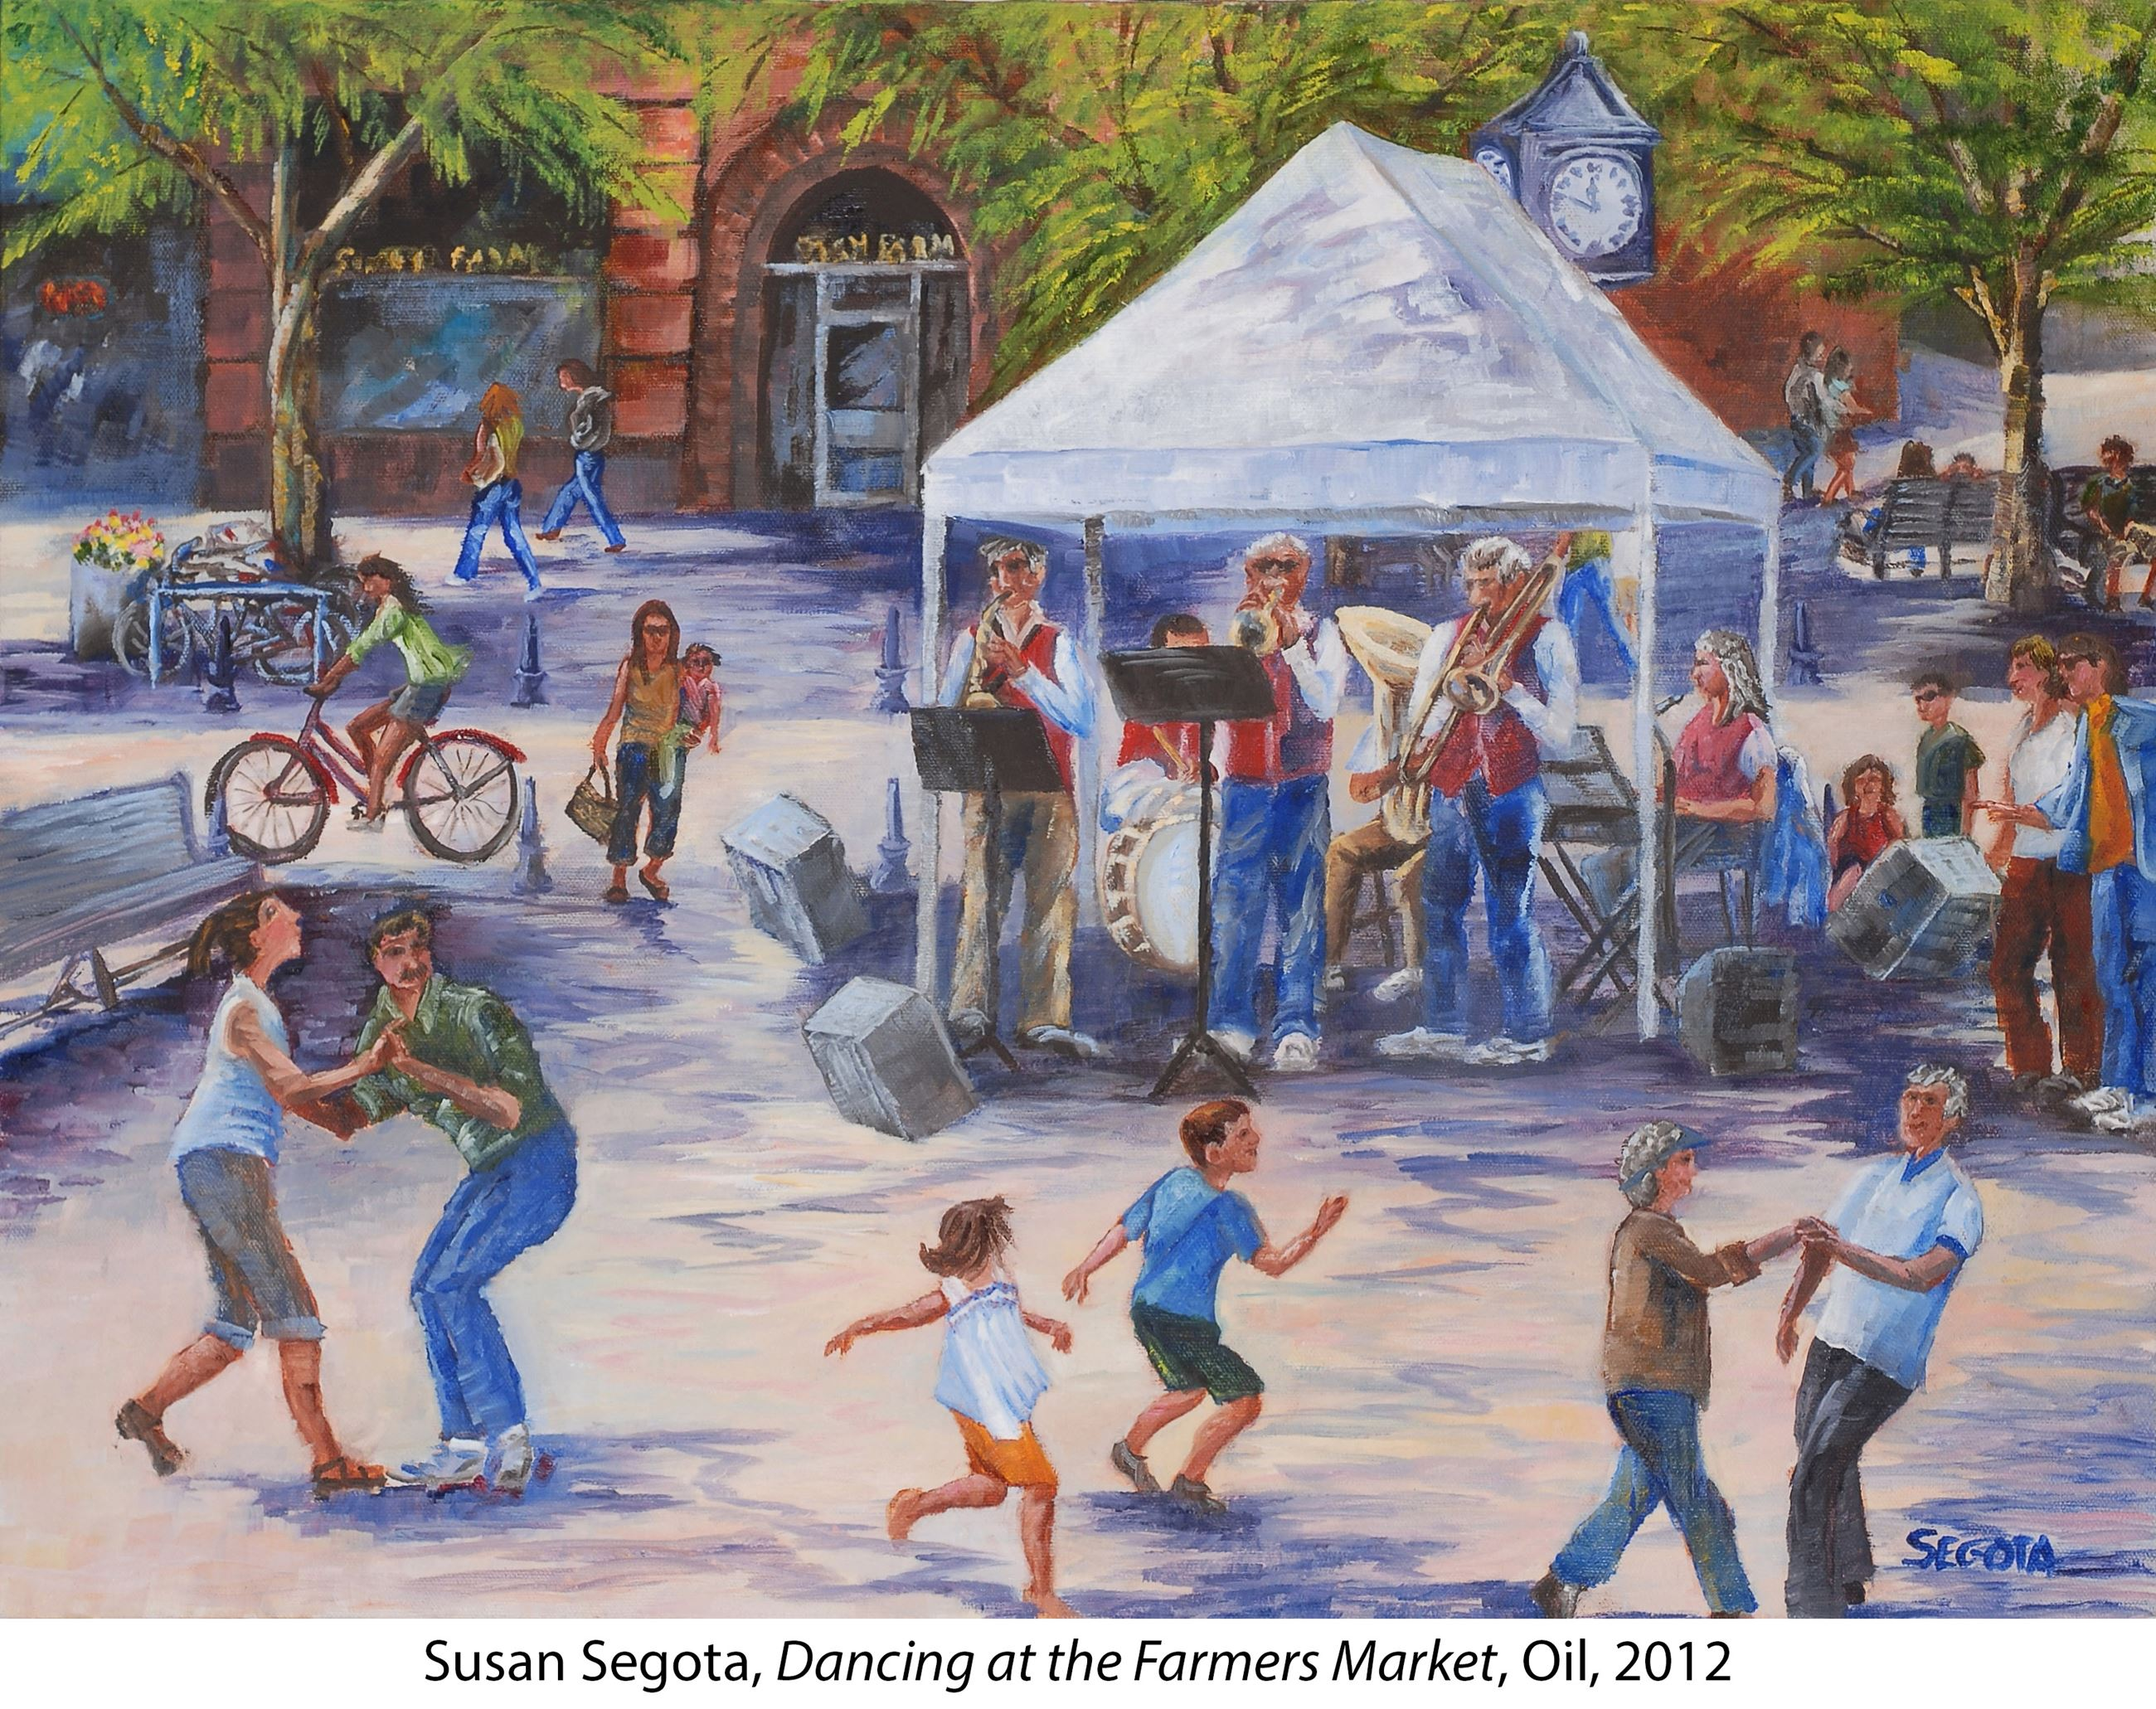 Susan Segota, Dancing at the Farmers Market, Oil, 2012